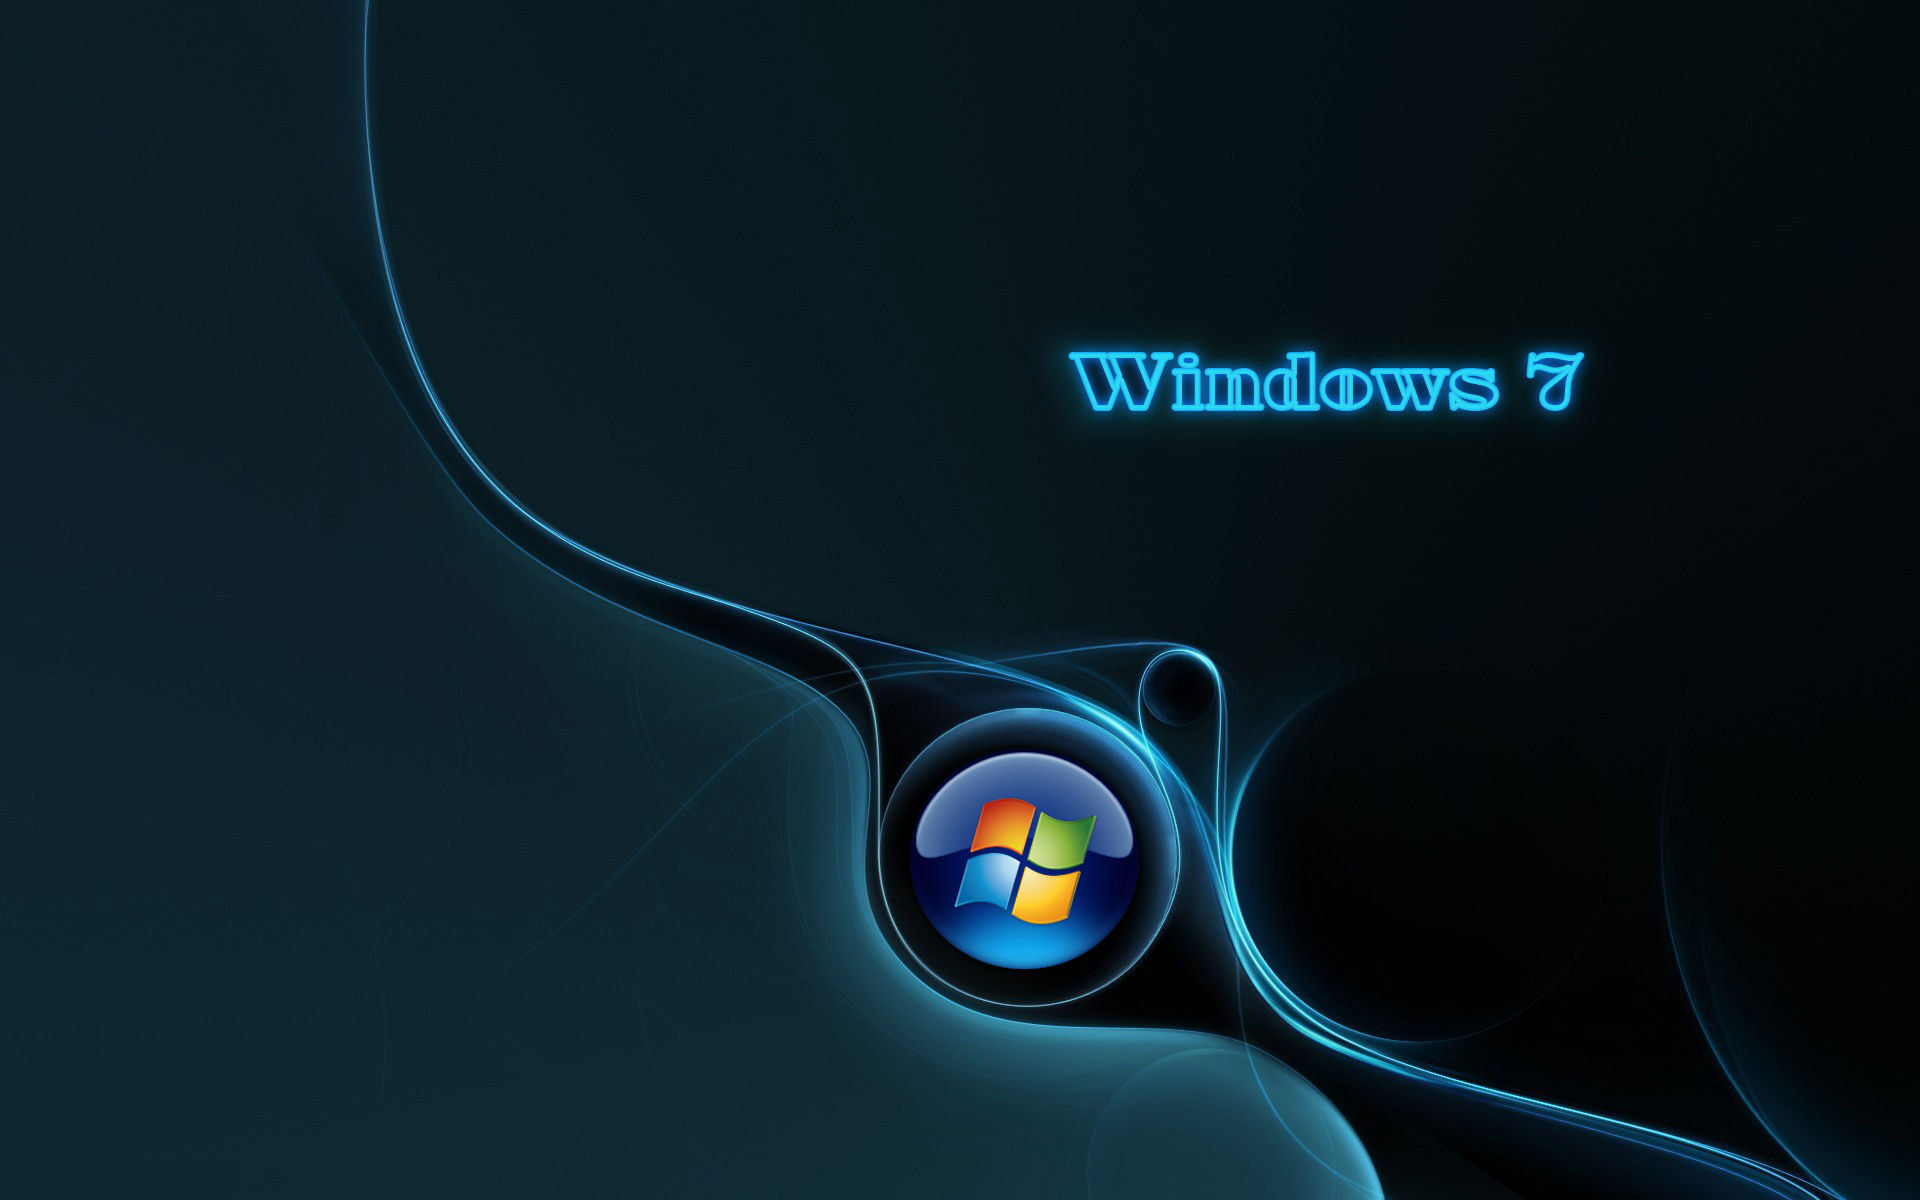 fond d'ecran windows 7 hd